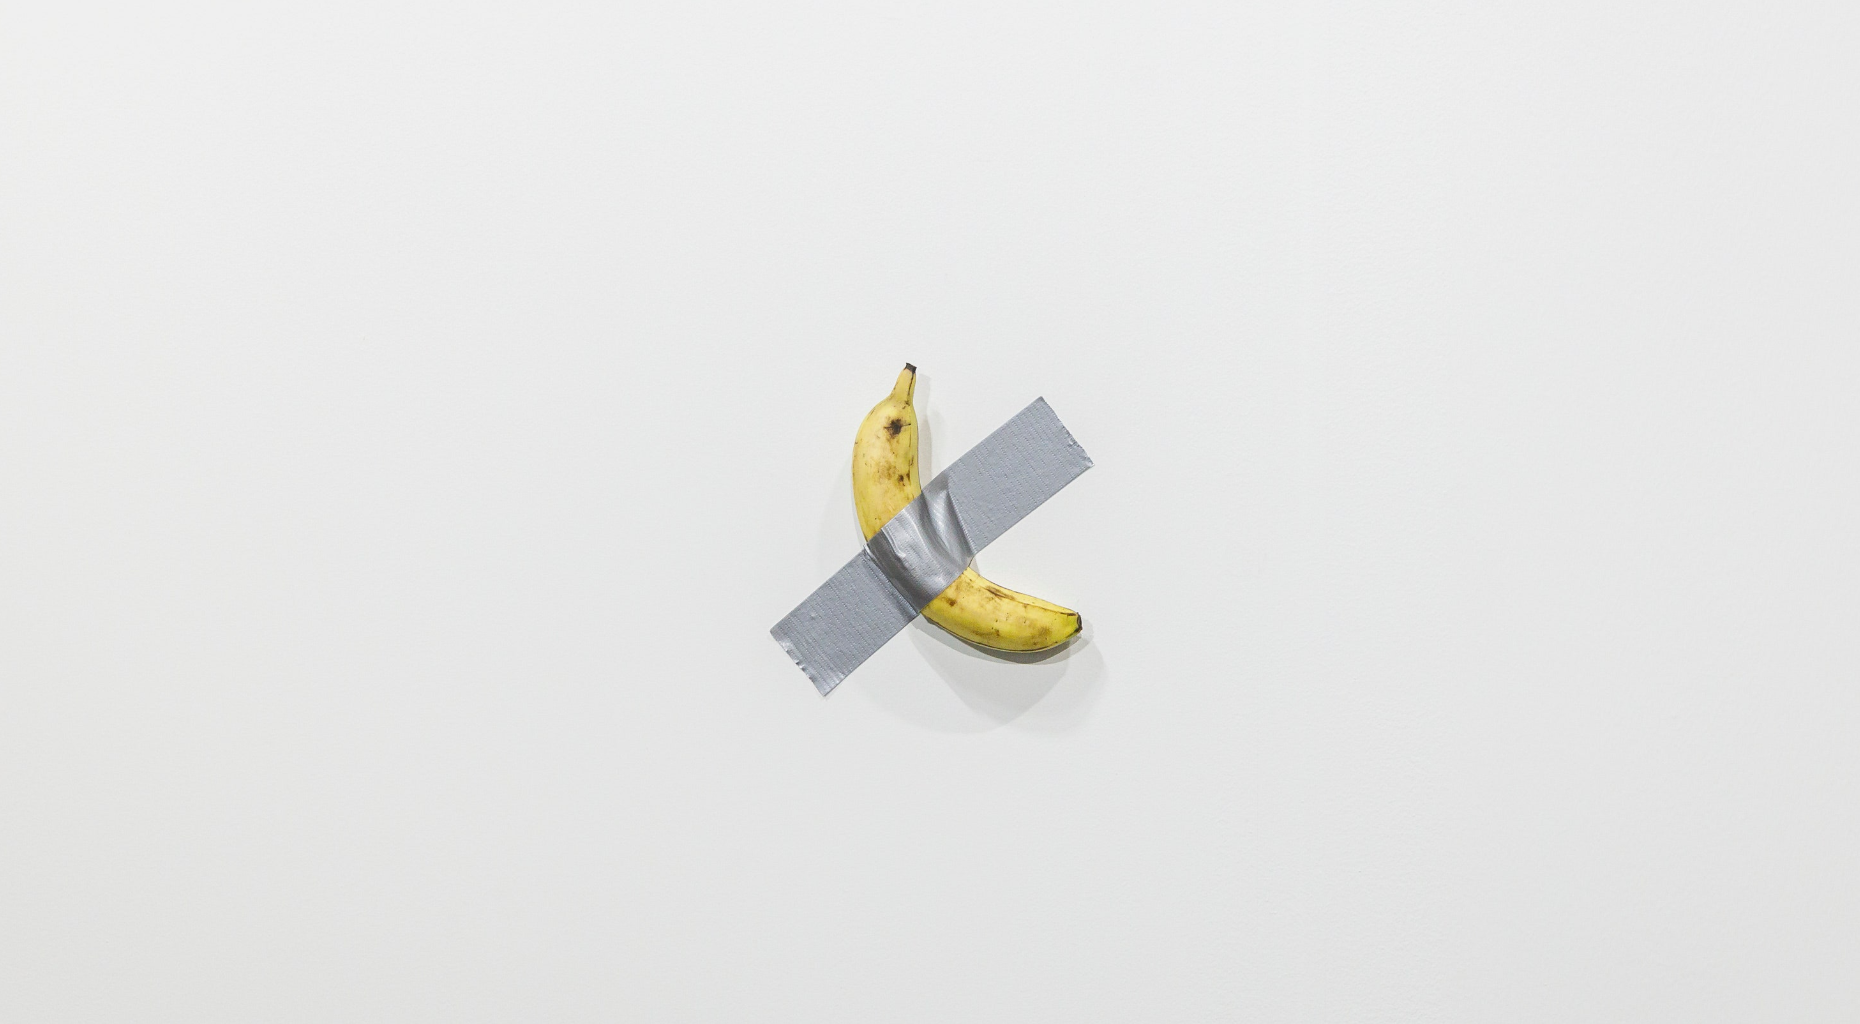 Banana secured with duct tape